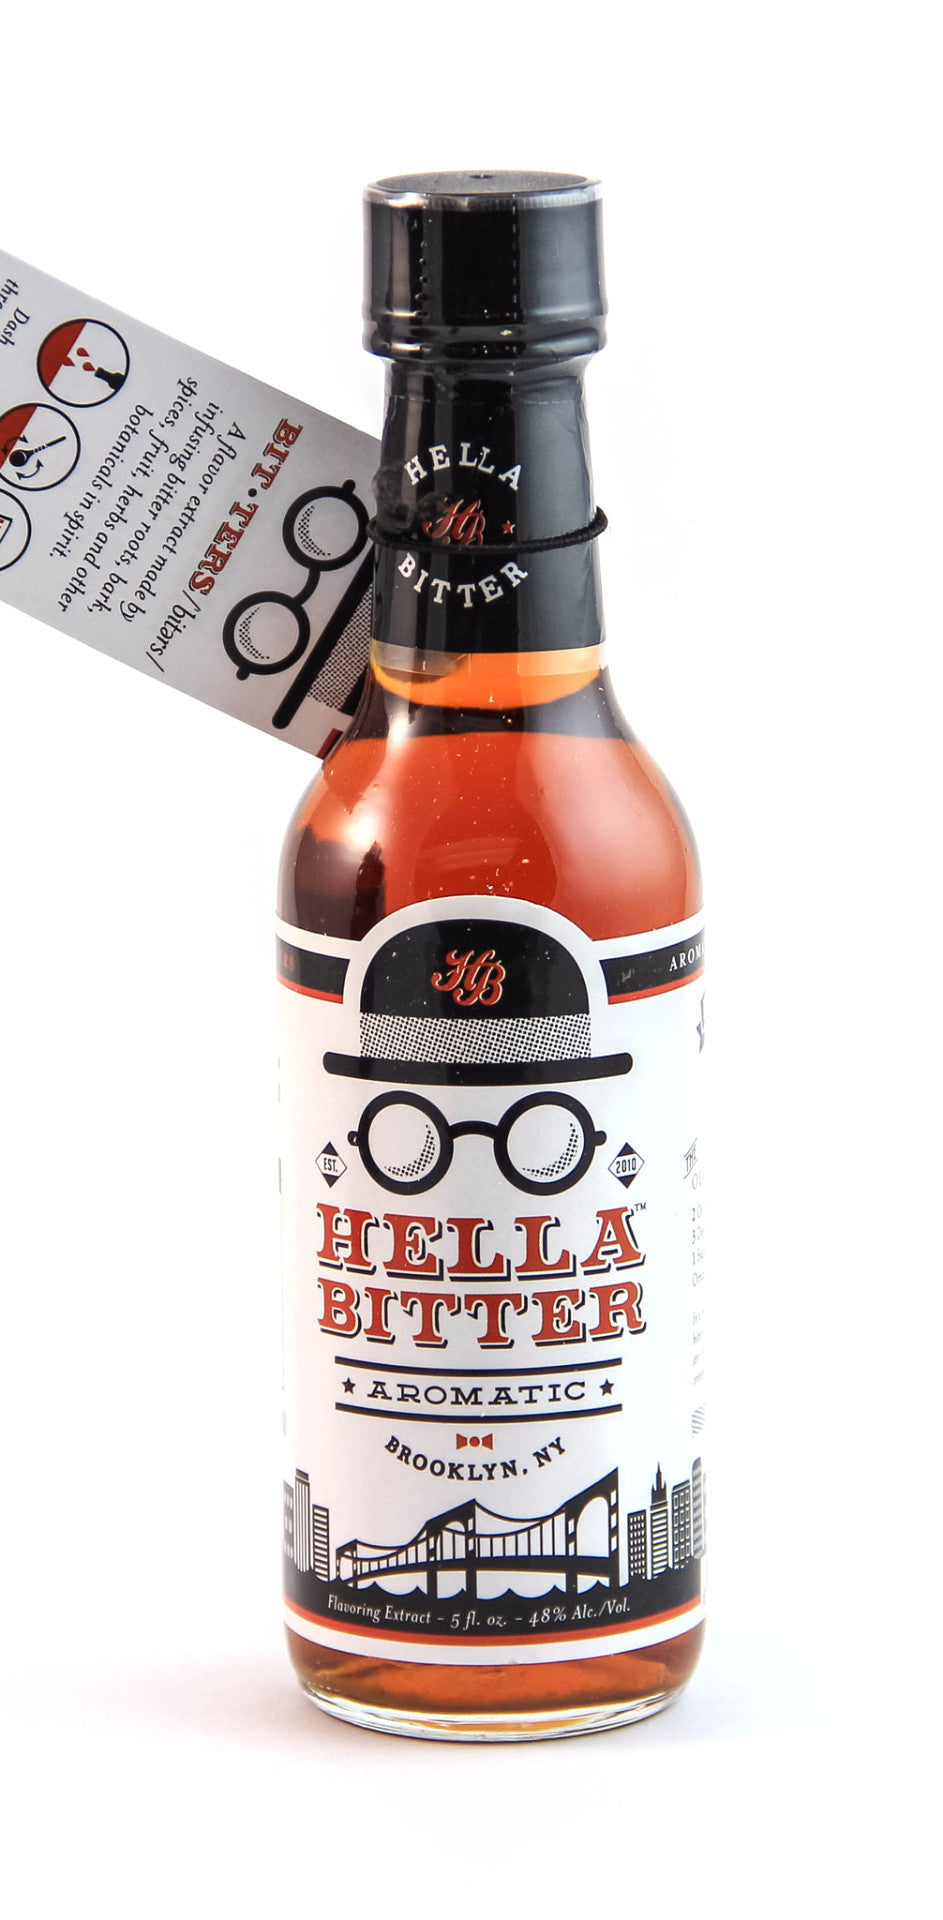 Hella Bitters Aromatic Bitters-Bitters, Syrups and Shrubs-The Meadow